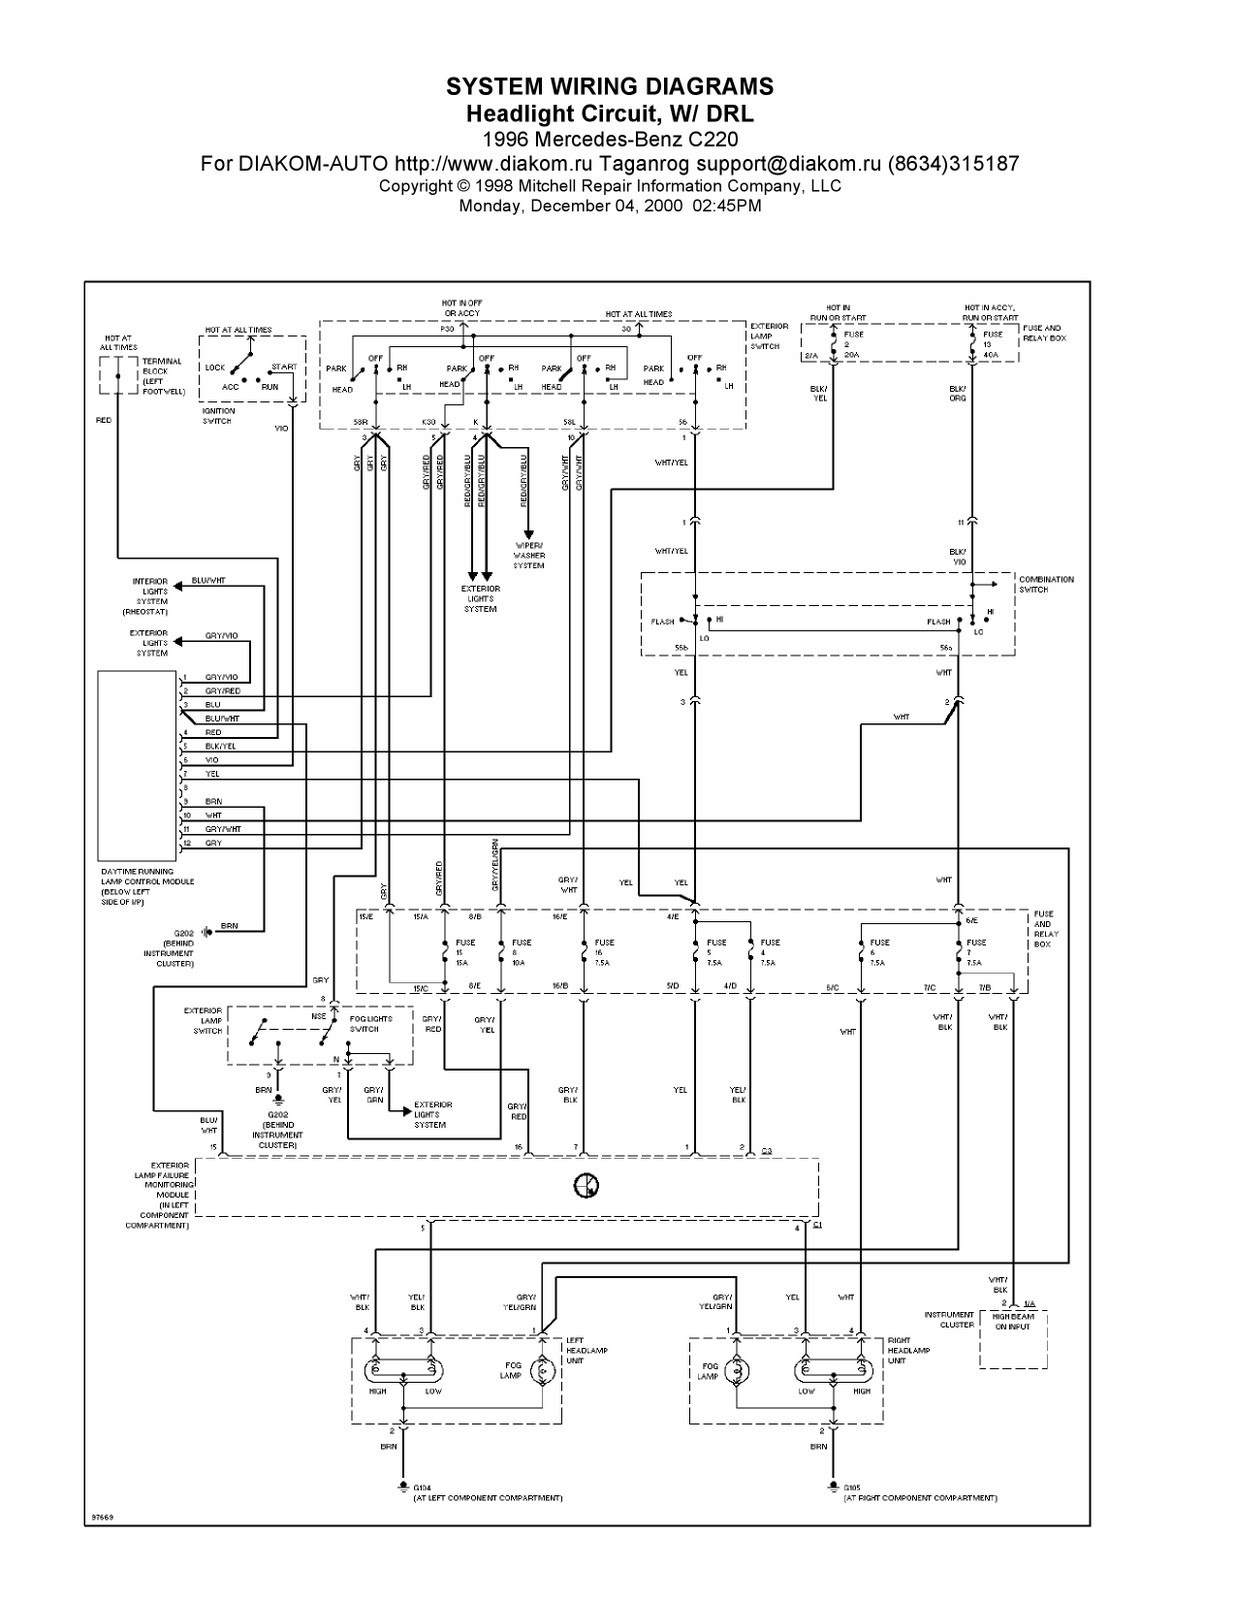 gl break sensor wiring diagram 1996 mercedes benz c220 system    wiring       diagrams    headlight  1996 mercedes benz c220 system    wiring       diagrams    headlight